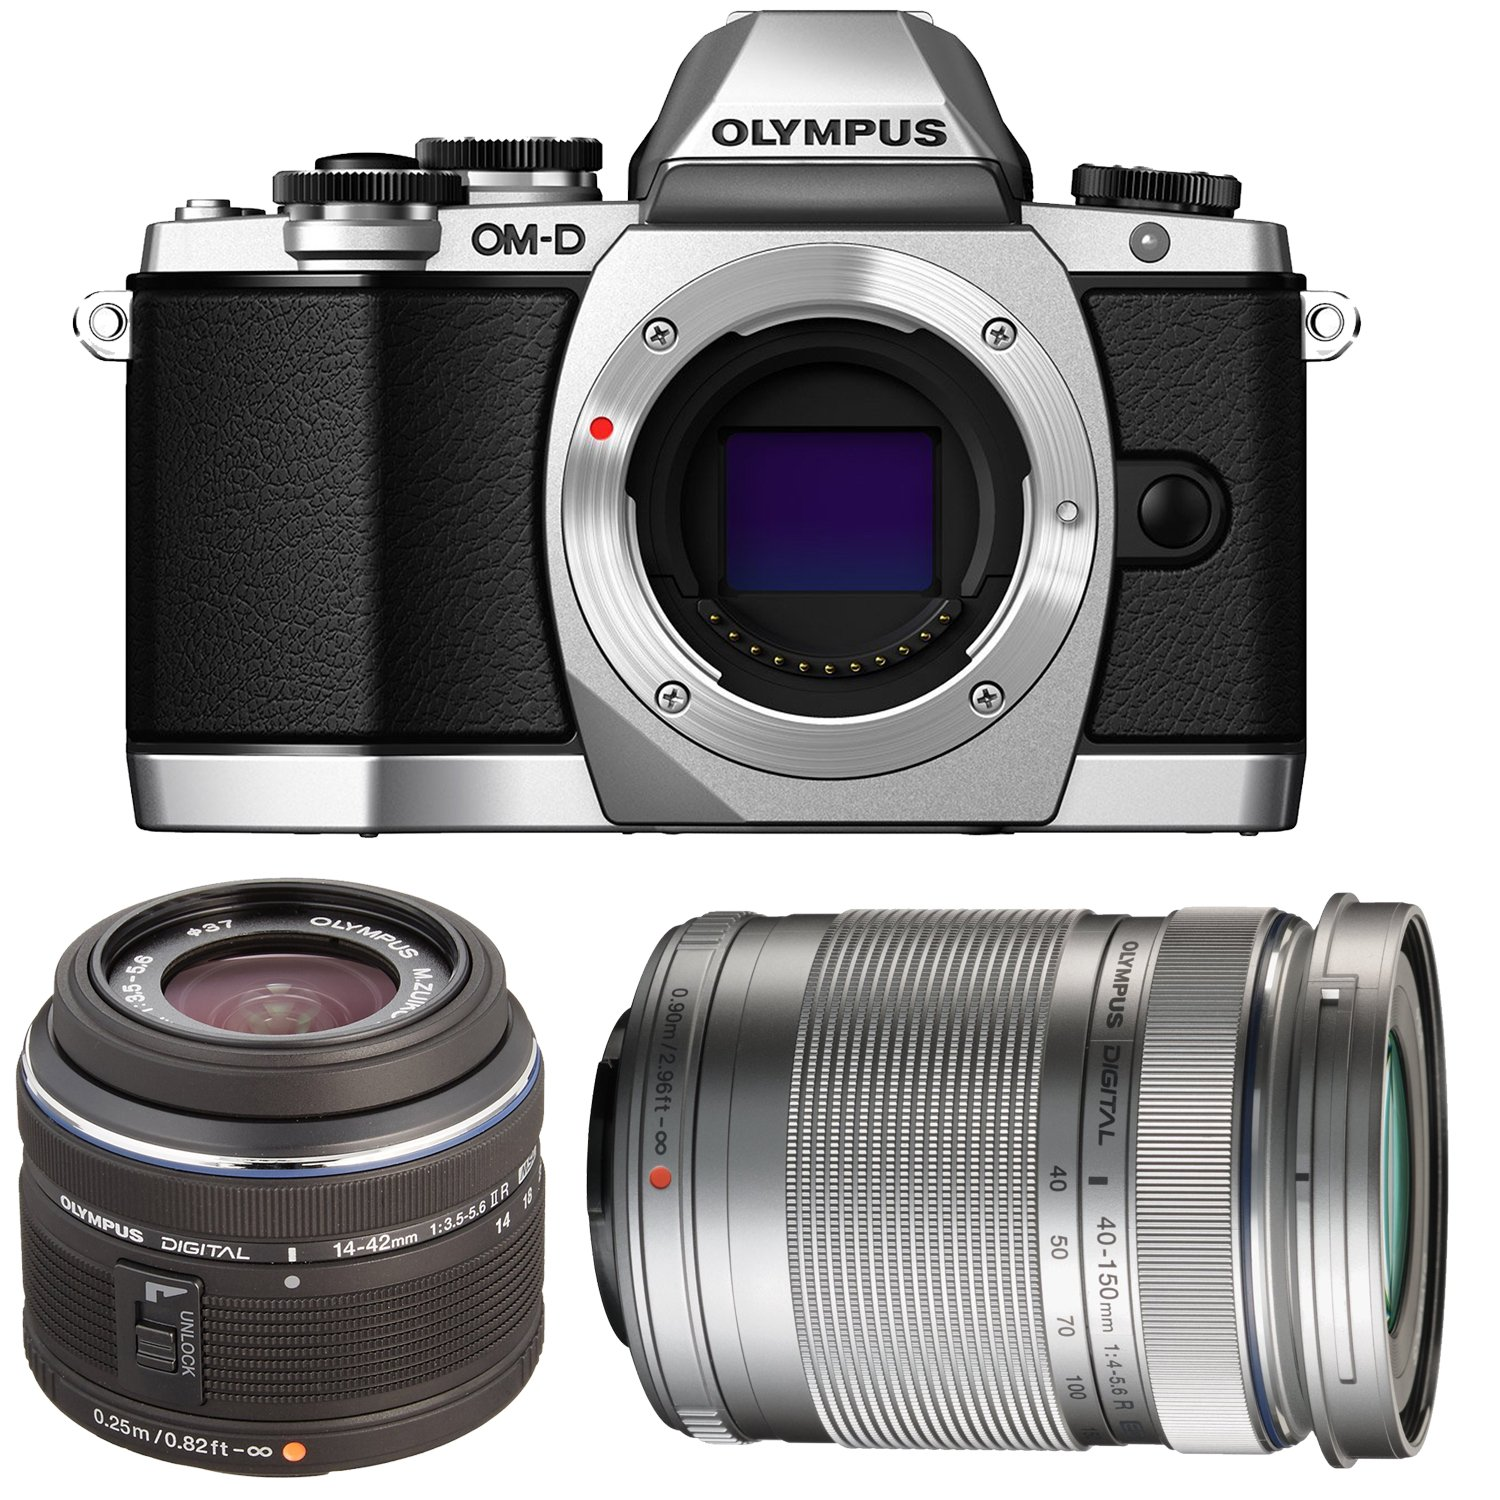 Olympus OM-D E-M10 16 MP Mirrorless Digital Camera with 14-42mm 2RK lens (Silver) V207021SU000 + Olympus M. 40-150mm F4.0-5.6 R Zoom Lens Silver for Olympus & Panasonic Micro 4/3 Cameras V315030SU000